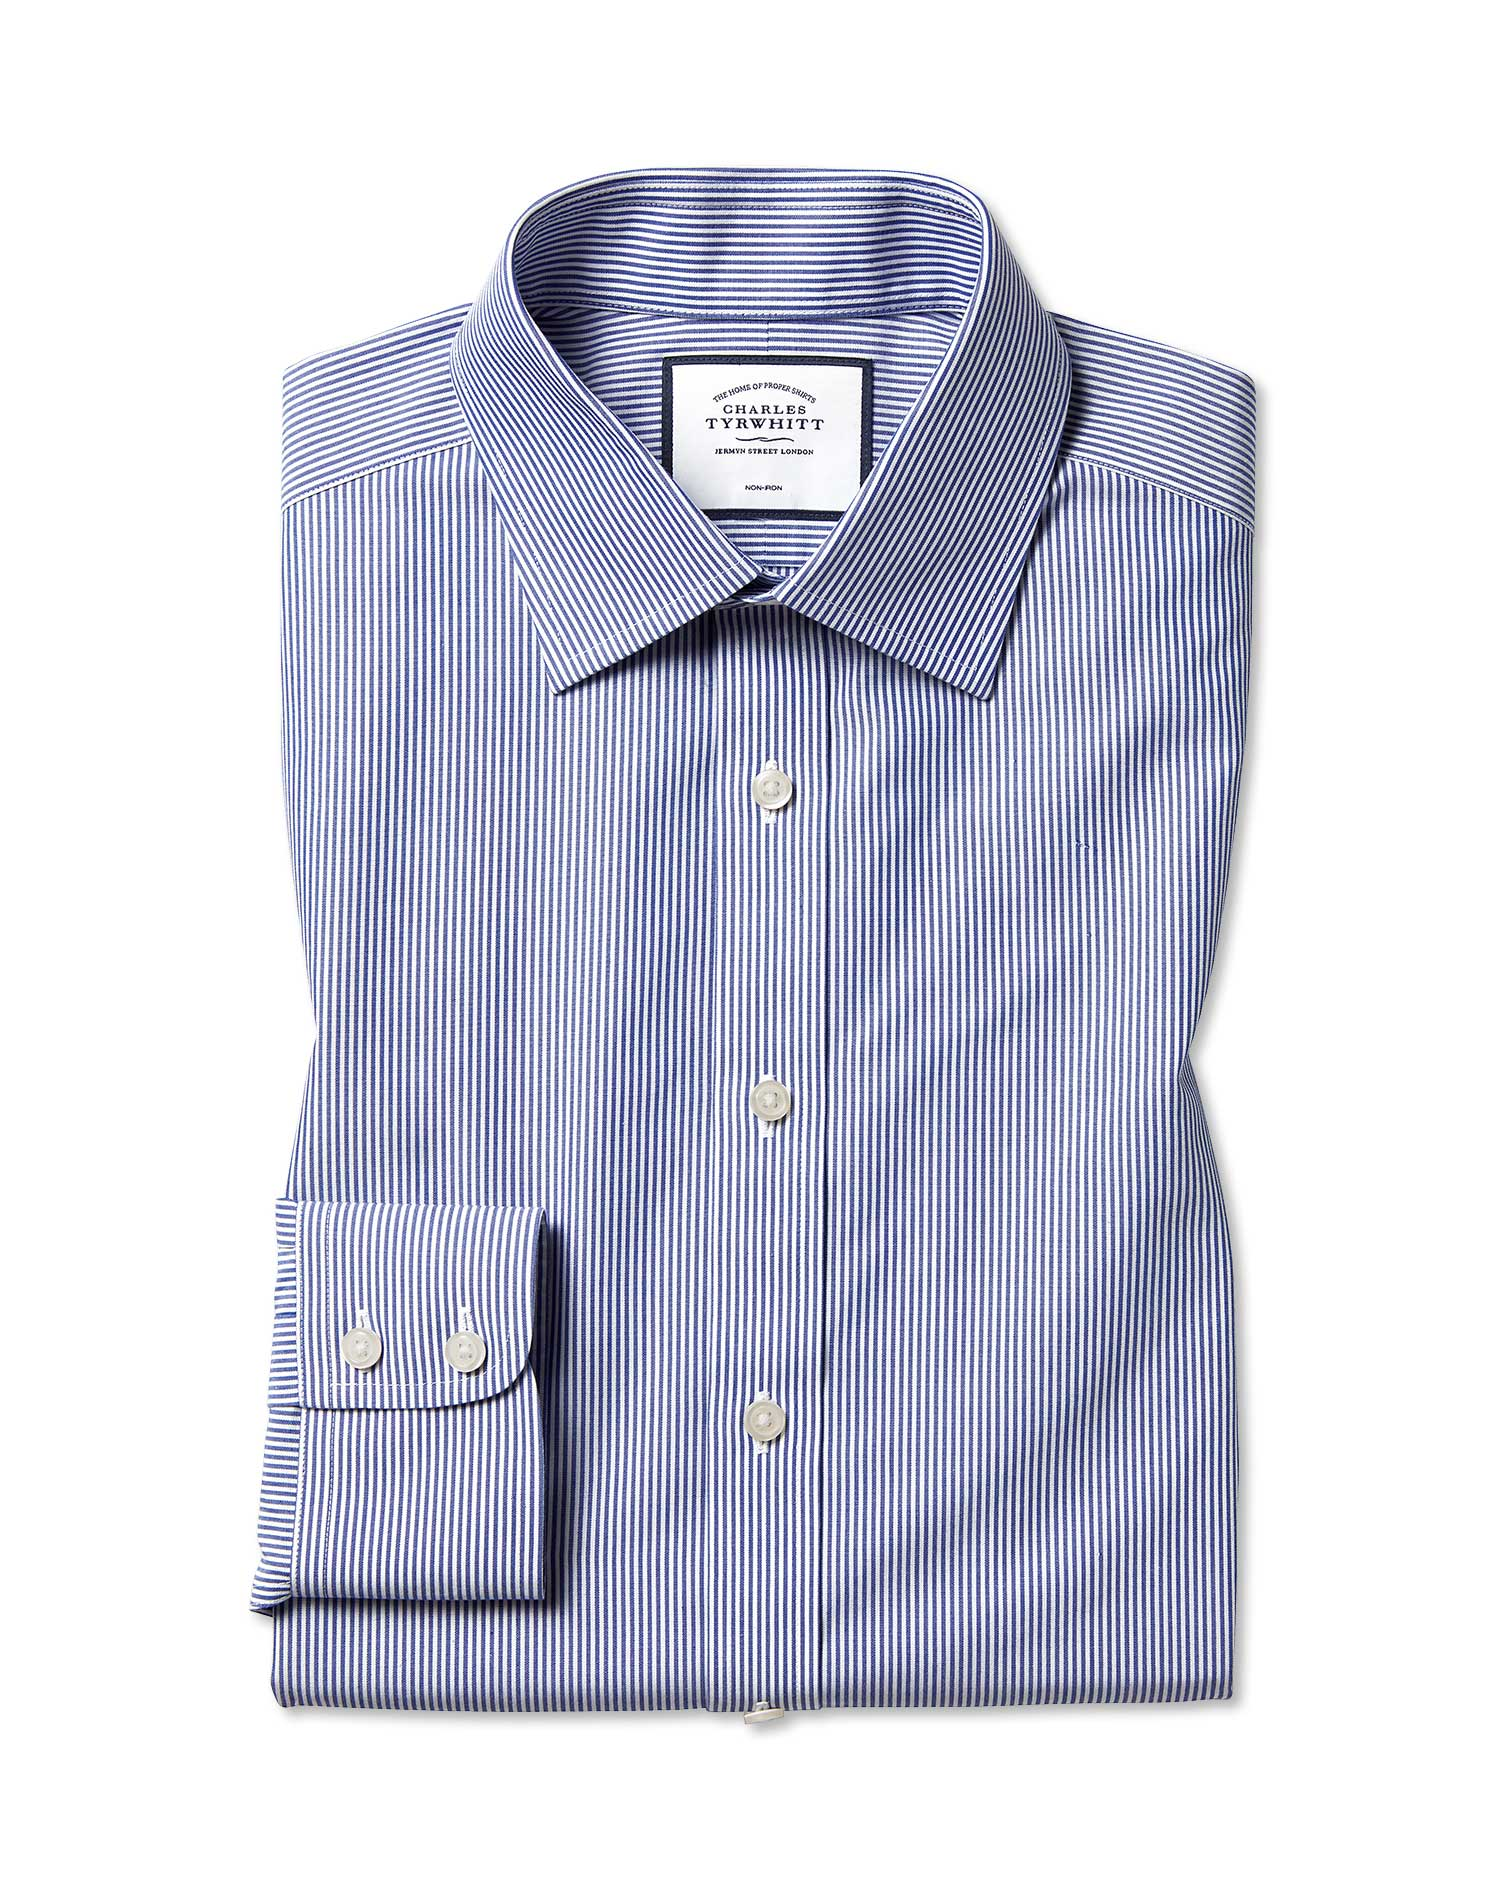 Classic Fit Non-Iron Bengal Stripe Navy Blue Cotton Formal Shirt Double Cuff Size 17/35 by Charles T